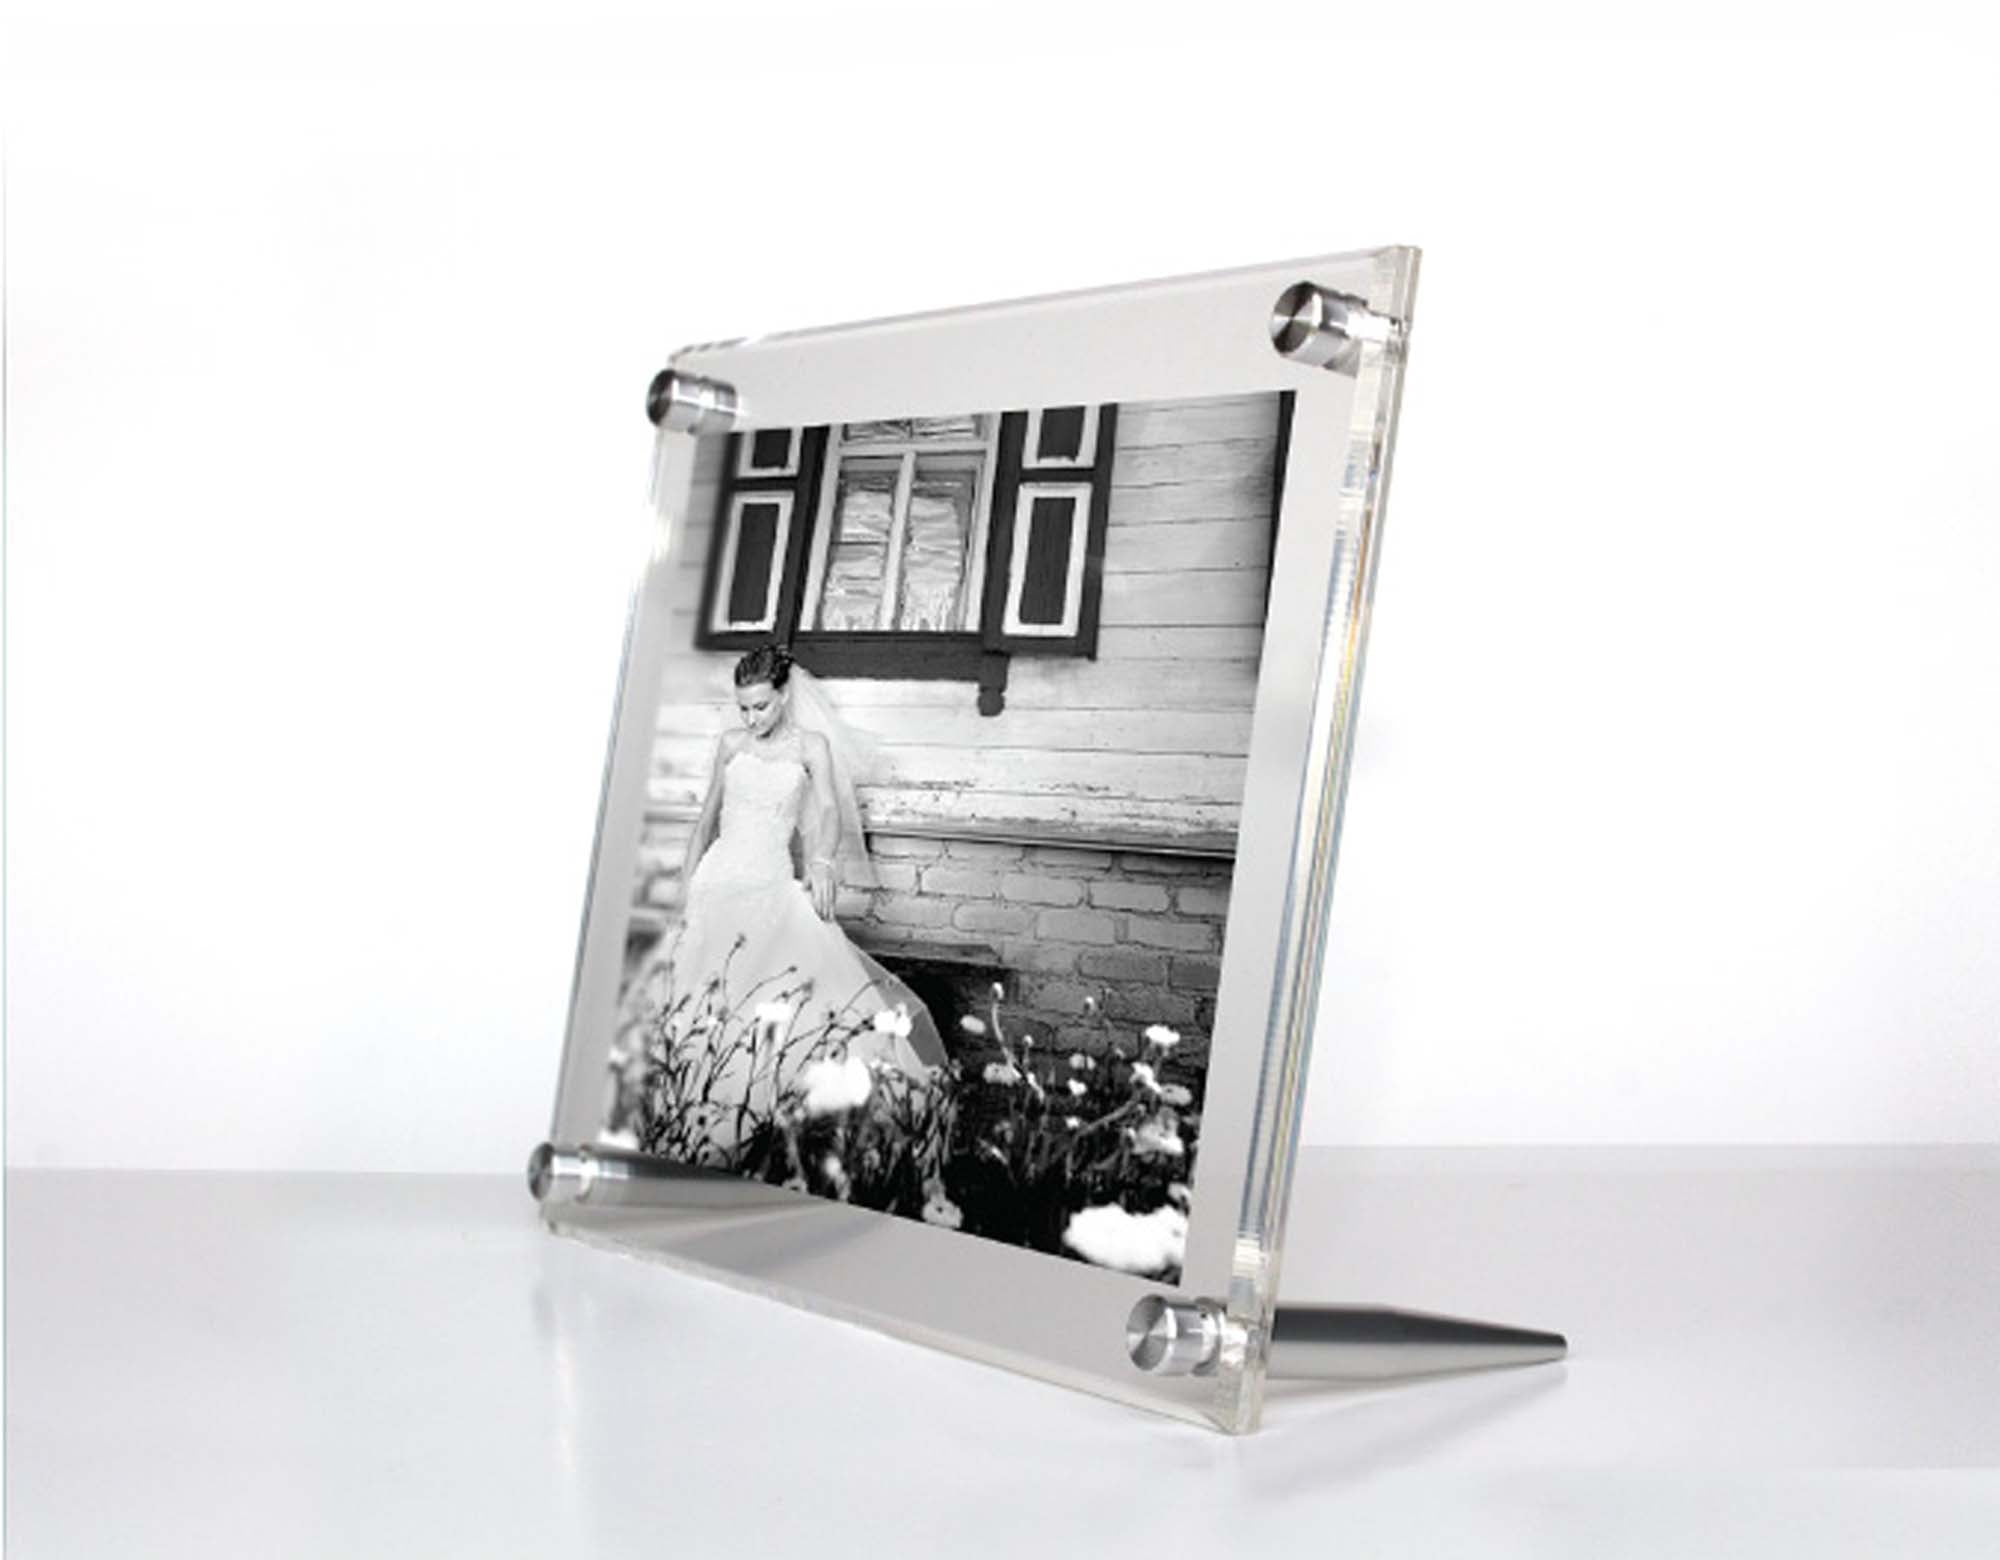 Case Packs Of 5 Tabletop Frames For 4x6 5x7 And 8x10 Photos Wexel Art